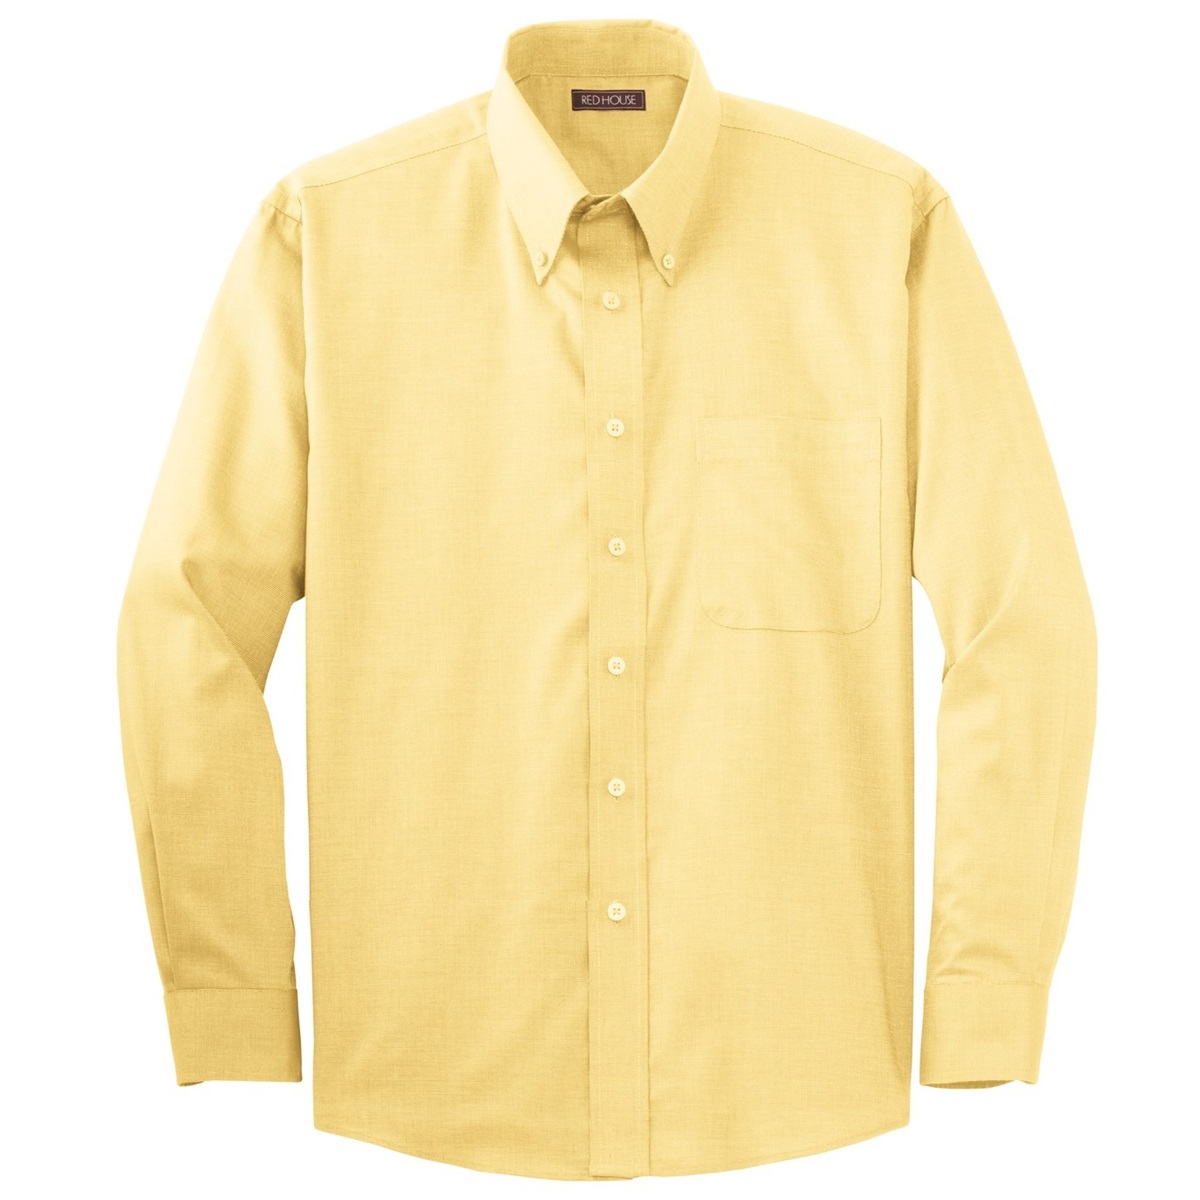 yellow button down shirt is shirt